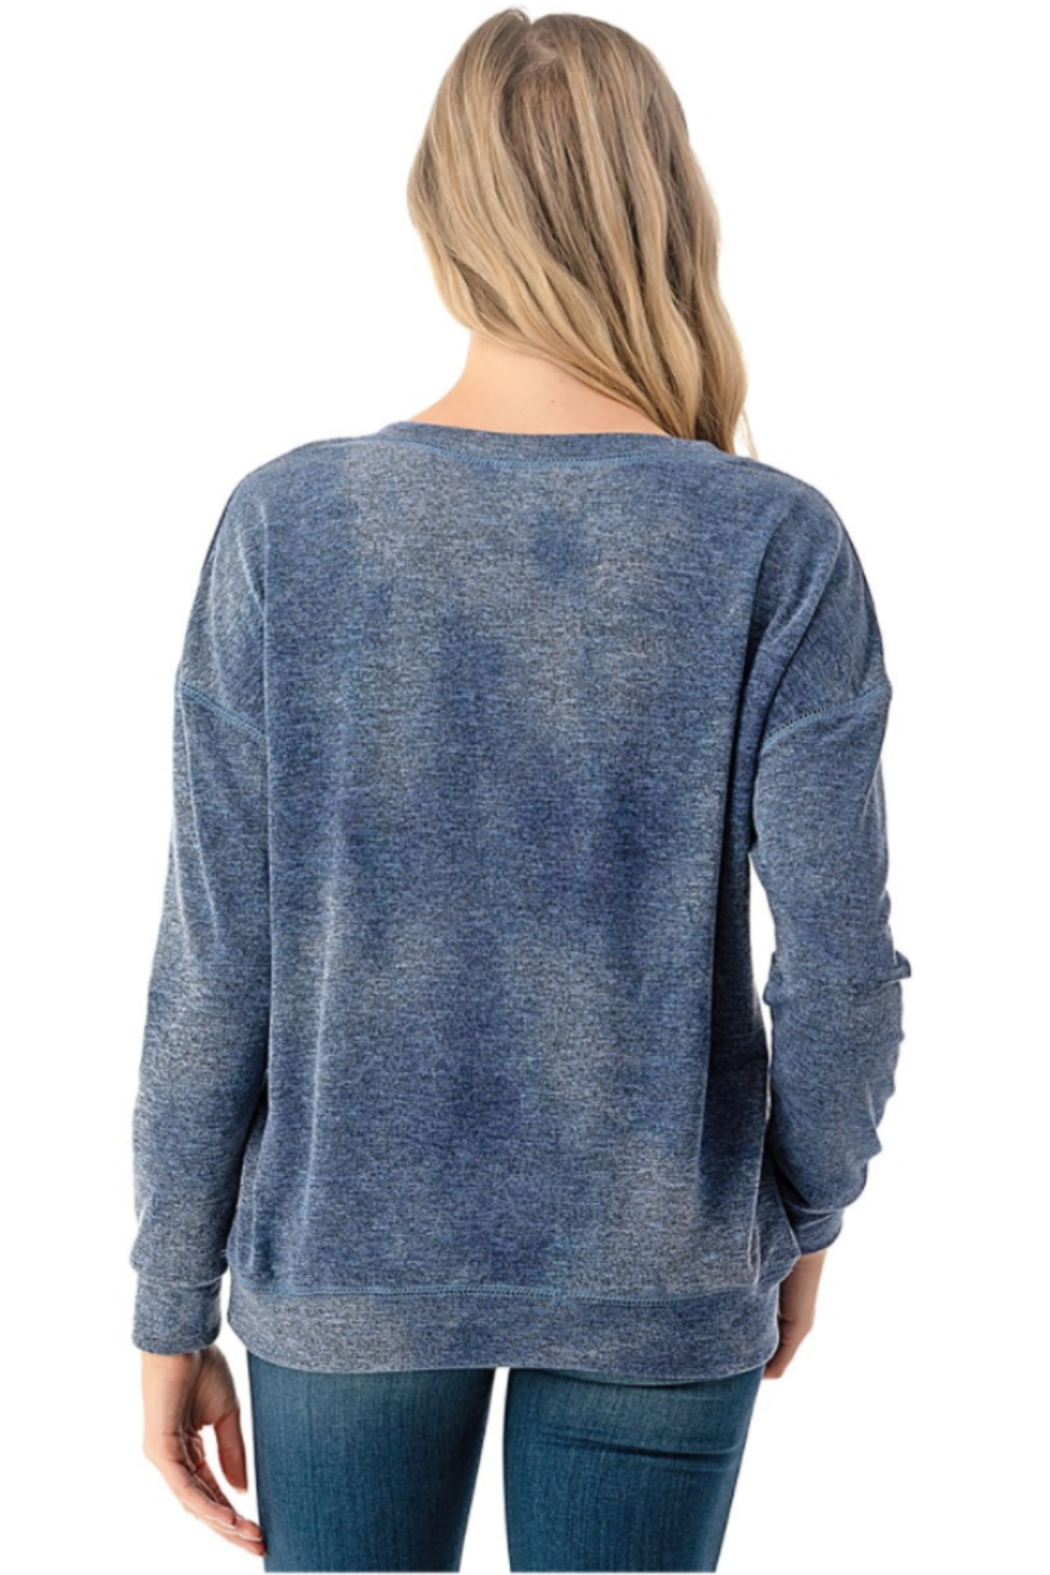 Ariella Tie Dye Pullover - Front Full Image